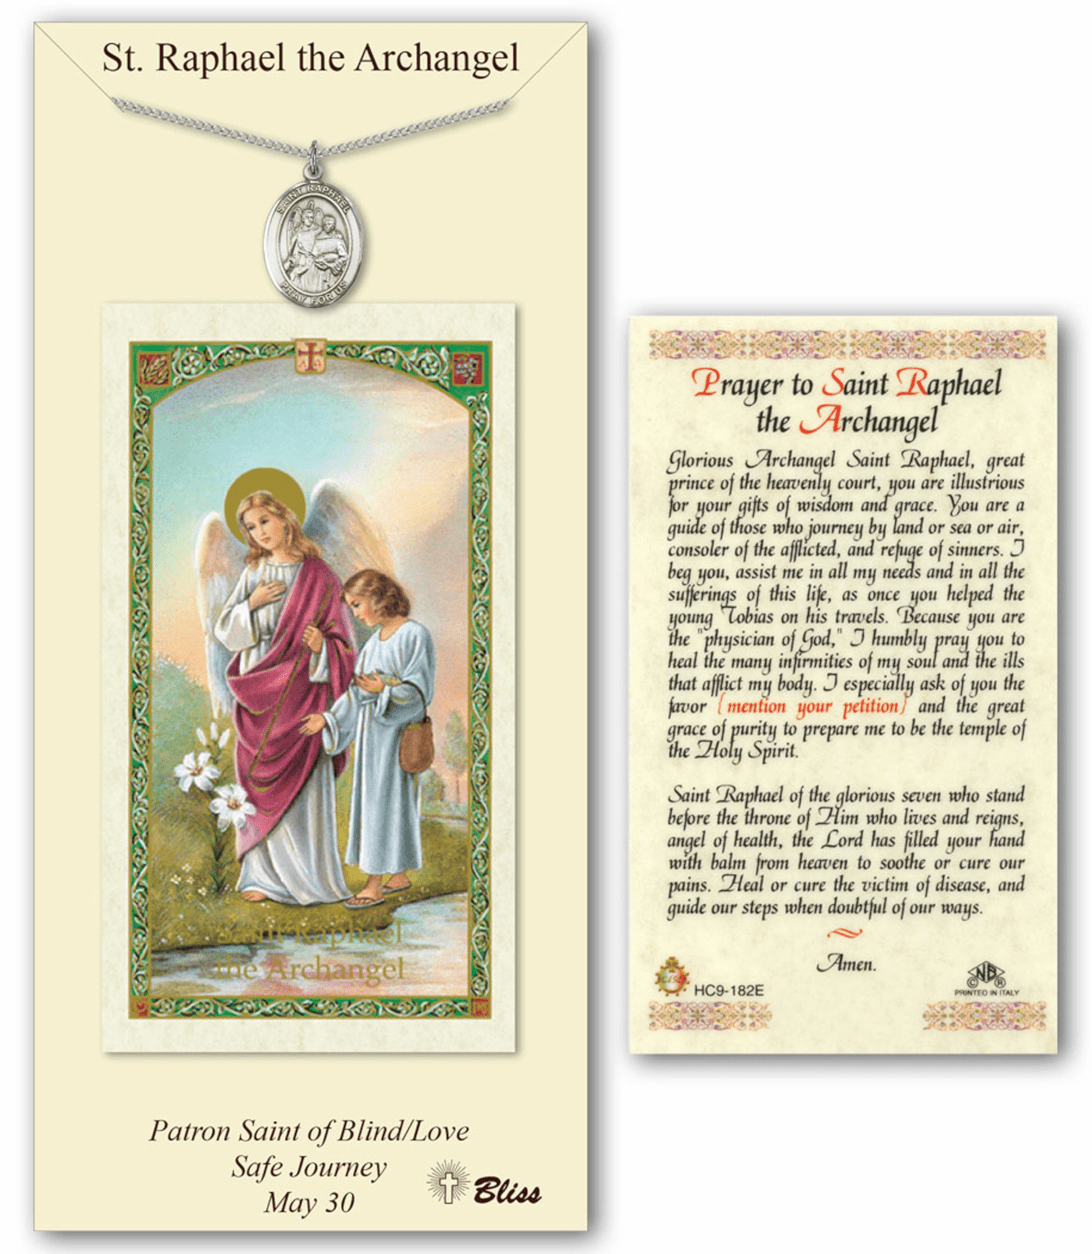 Saint Raphael the Archangel Pendant and Holy Prayer Card Gift Set by Bliss